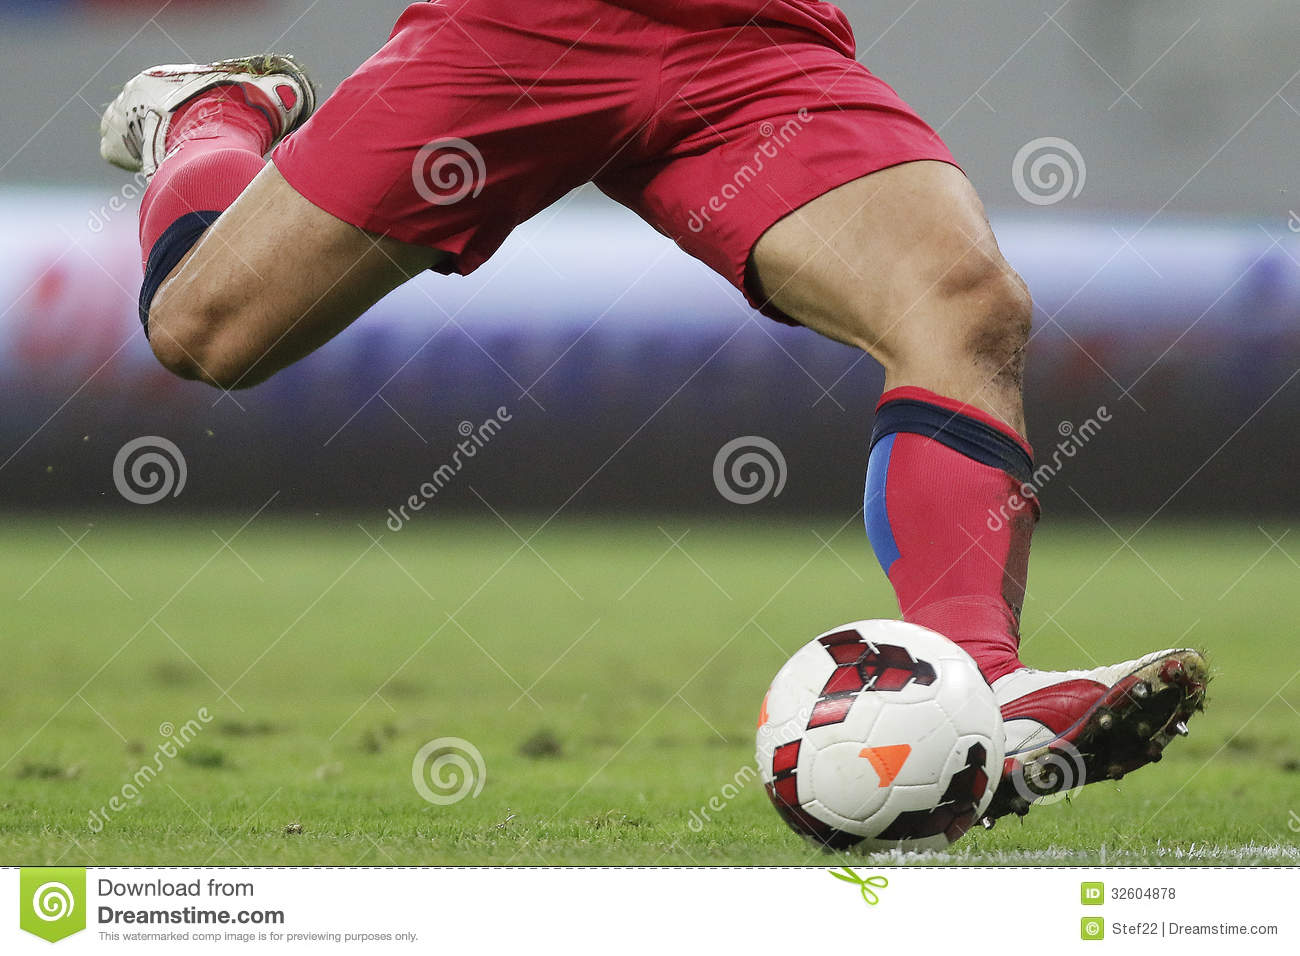 Football Player Shooting Ball Editorial Stock Photo - Image: 32604878